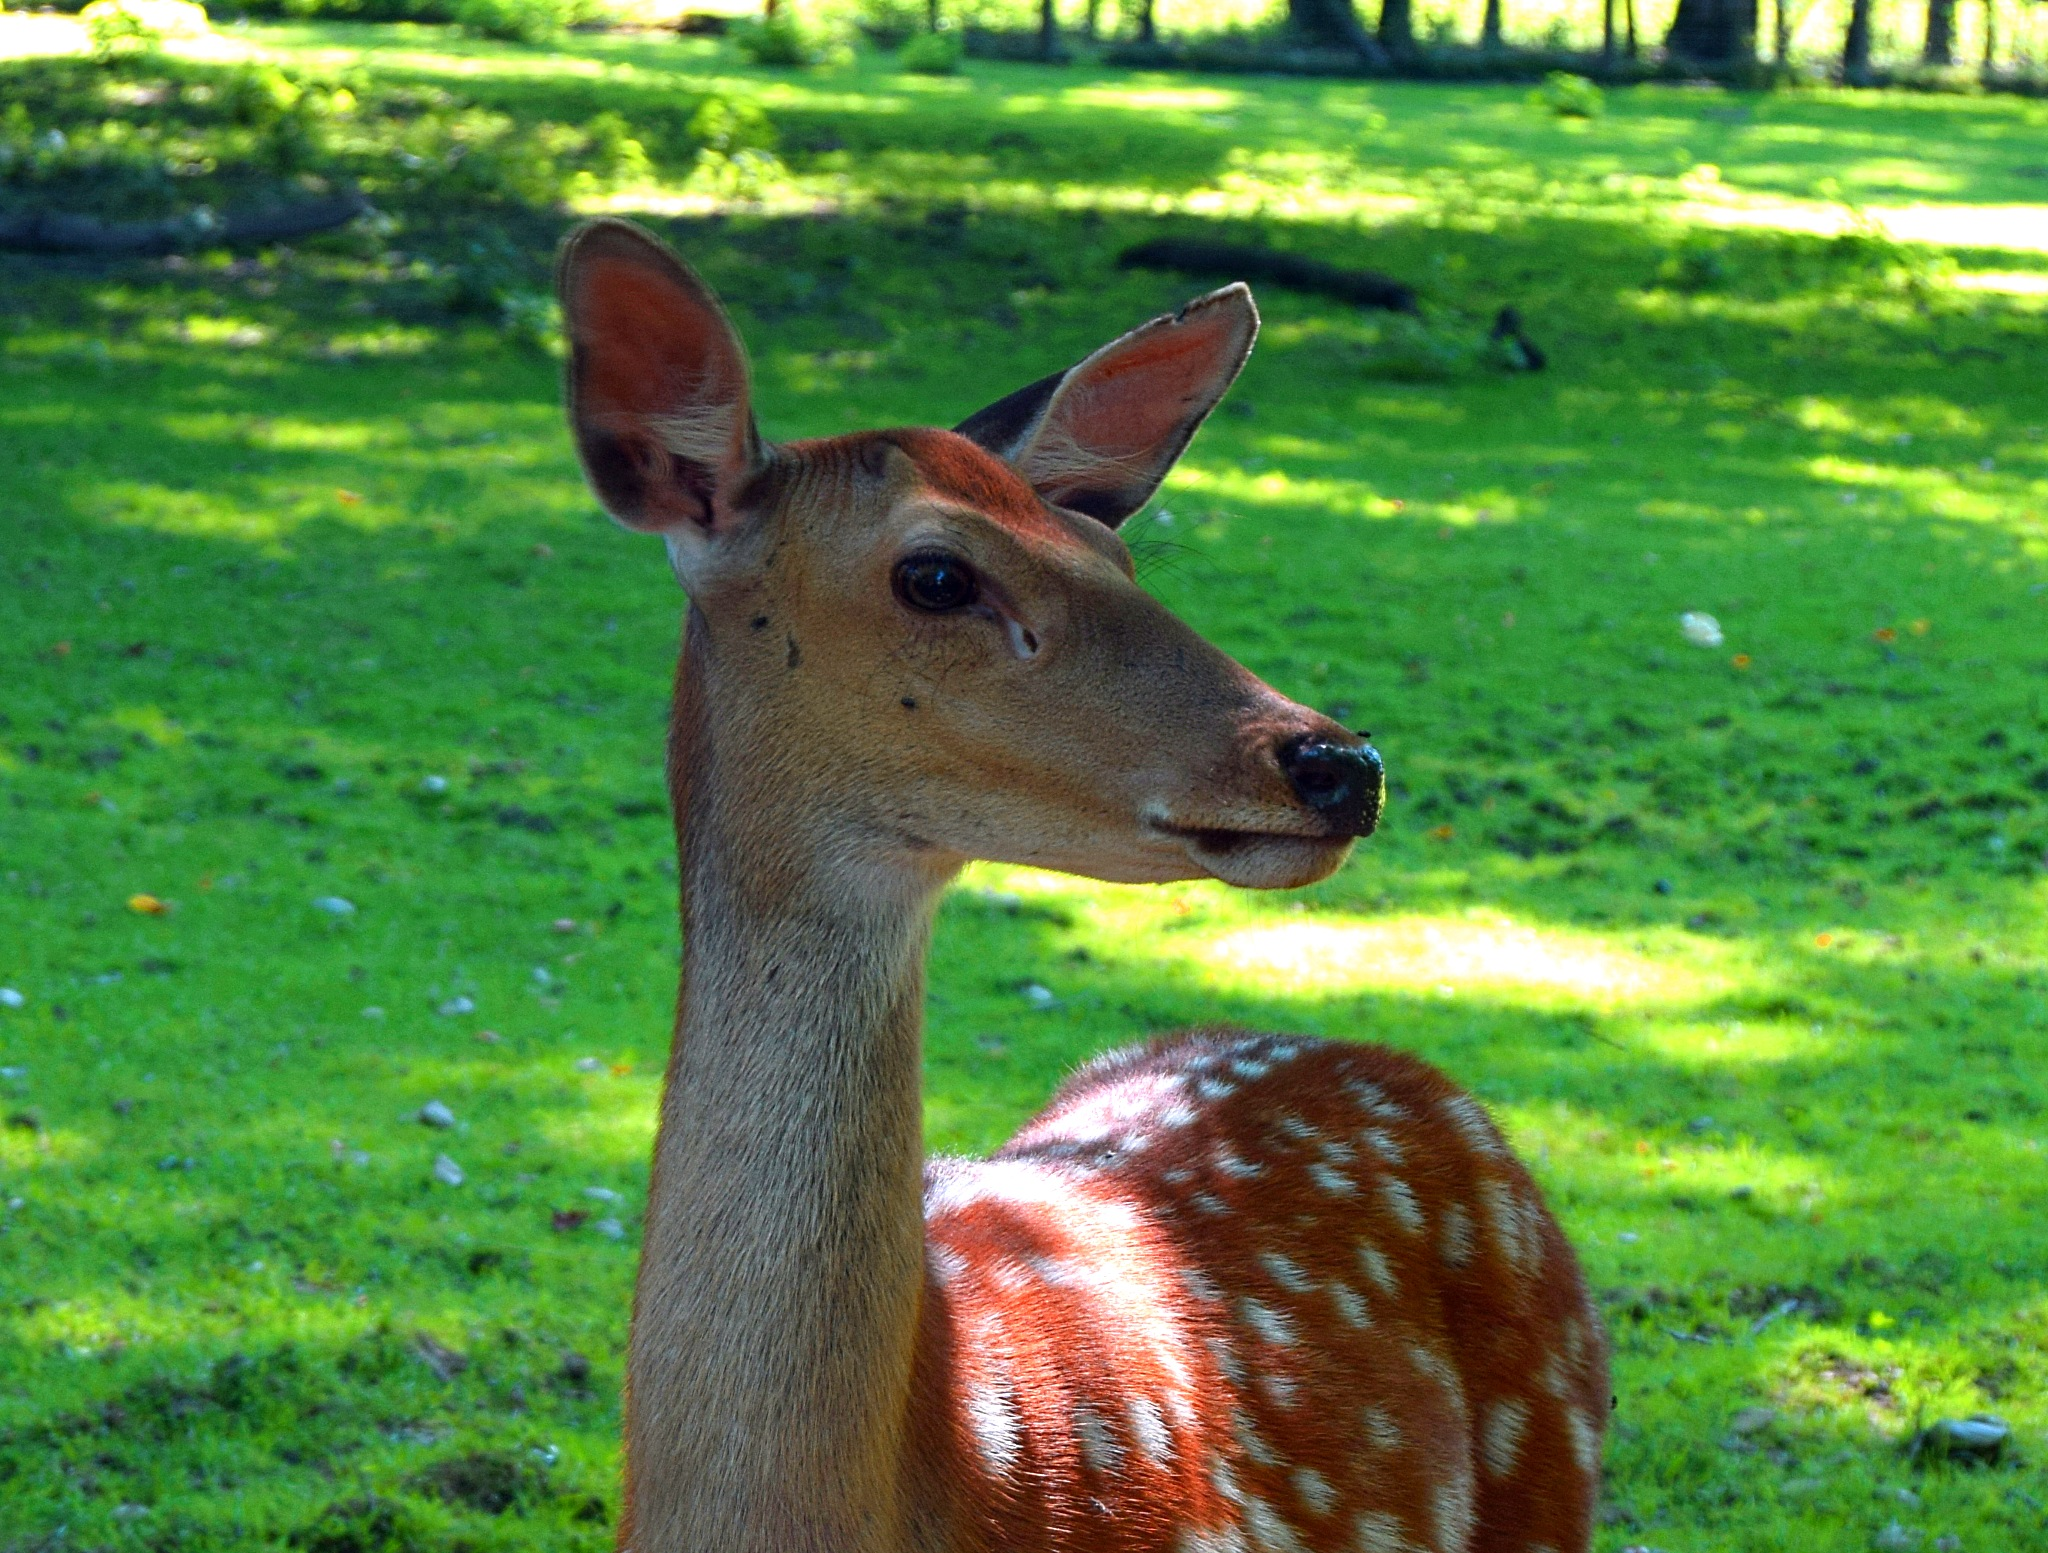 Deer pretty near by PeterHaselstoner